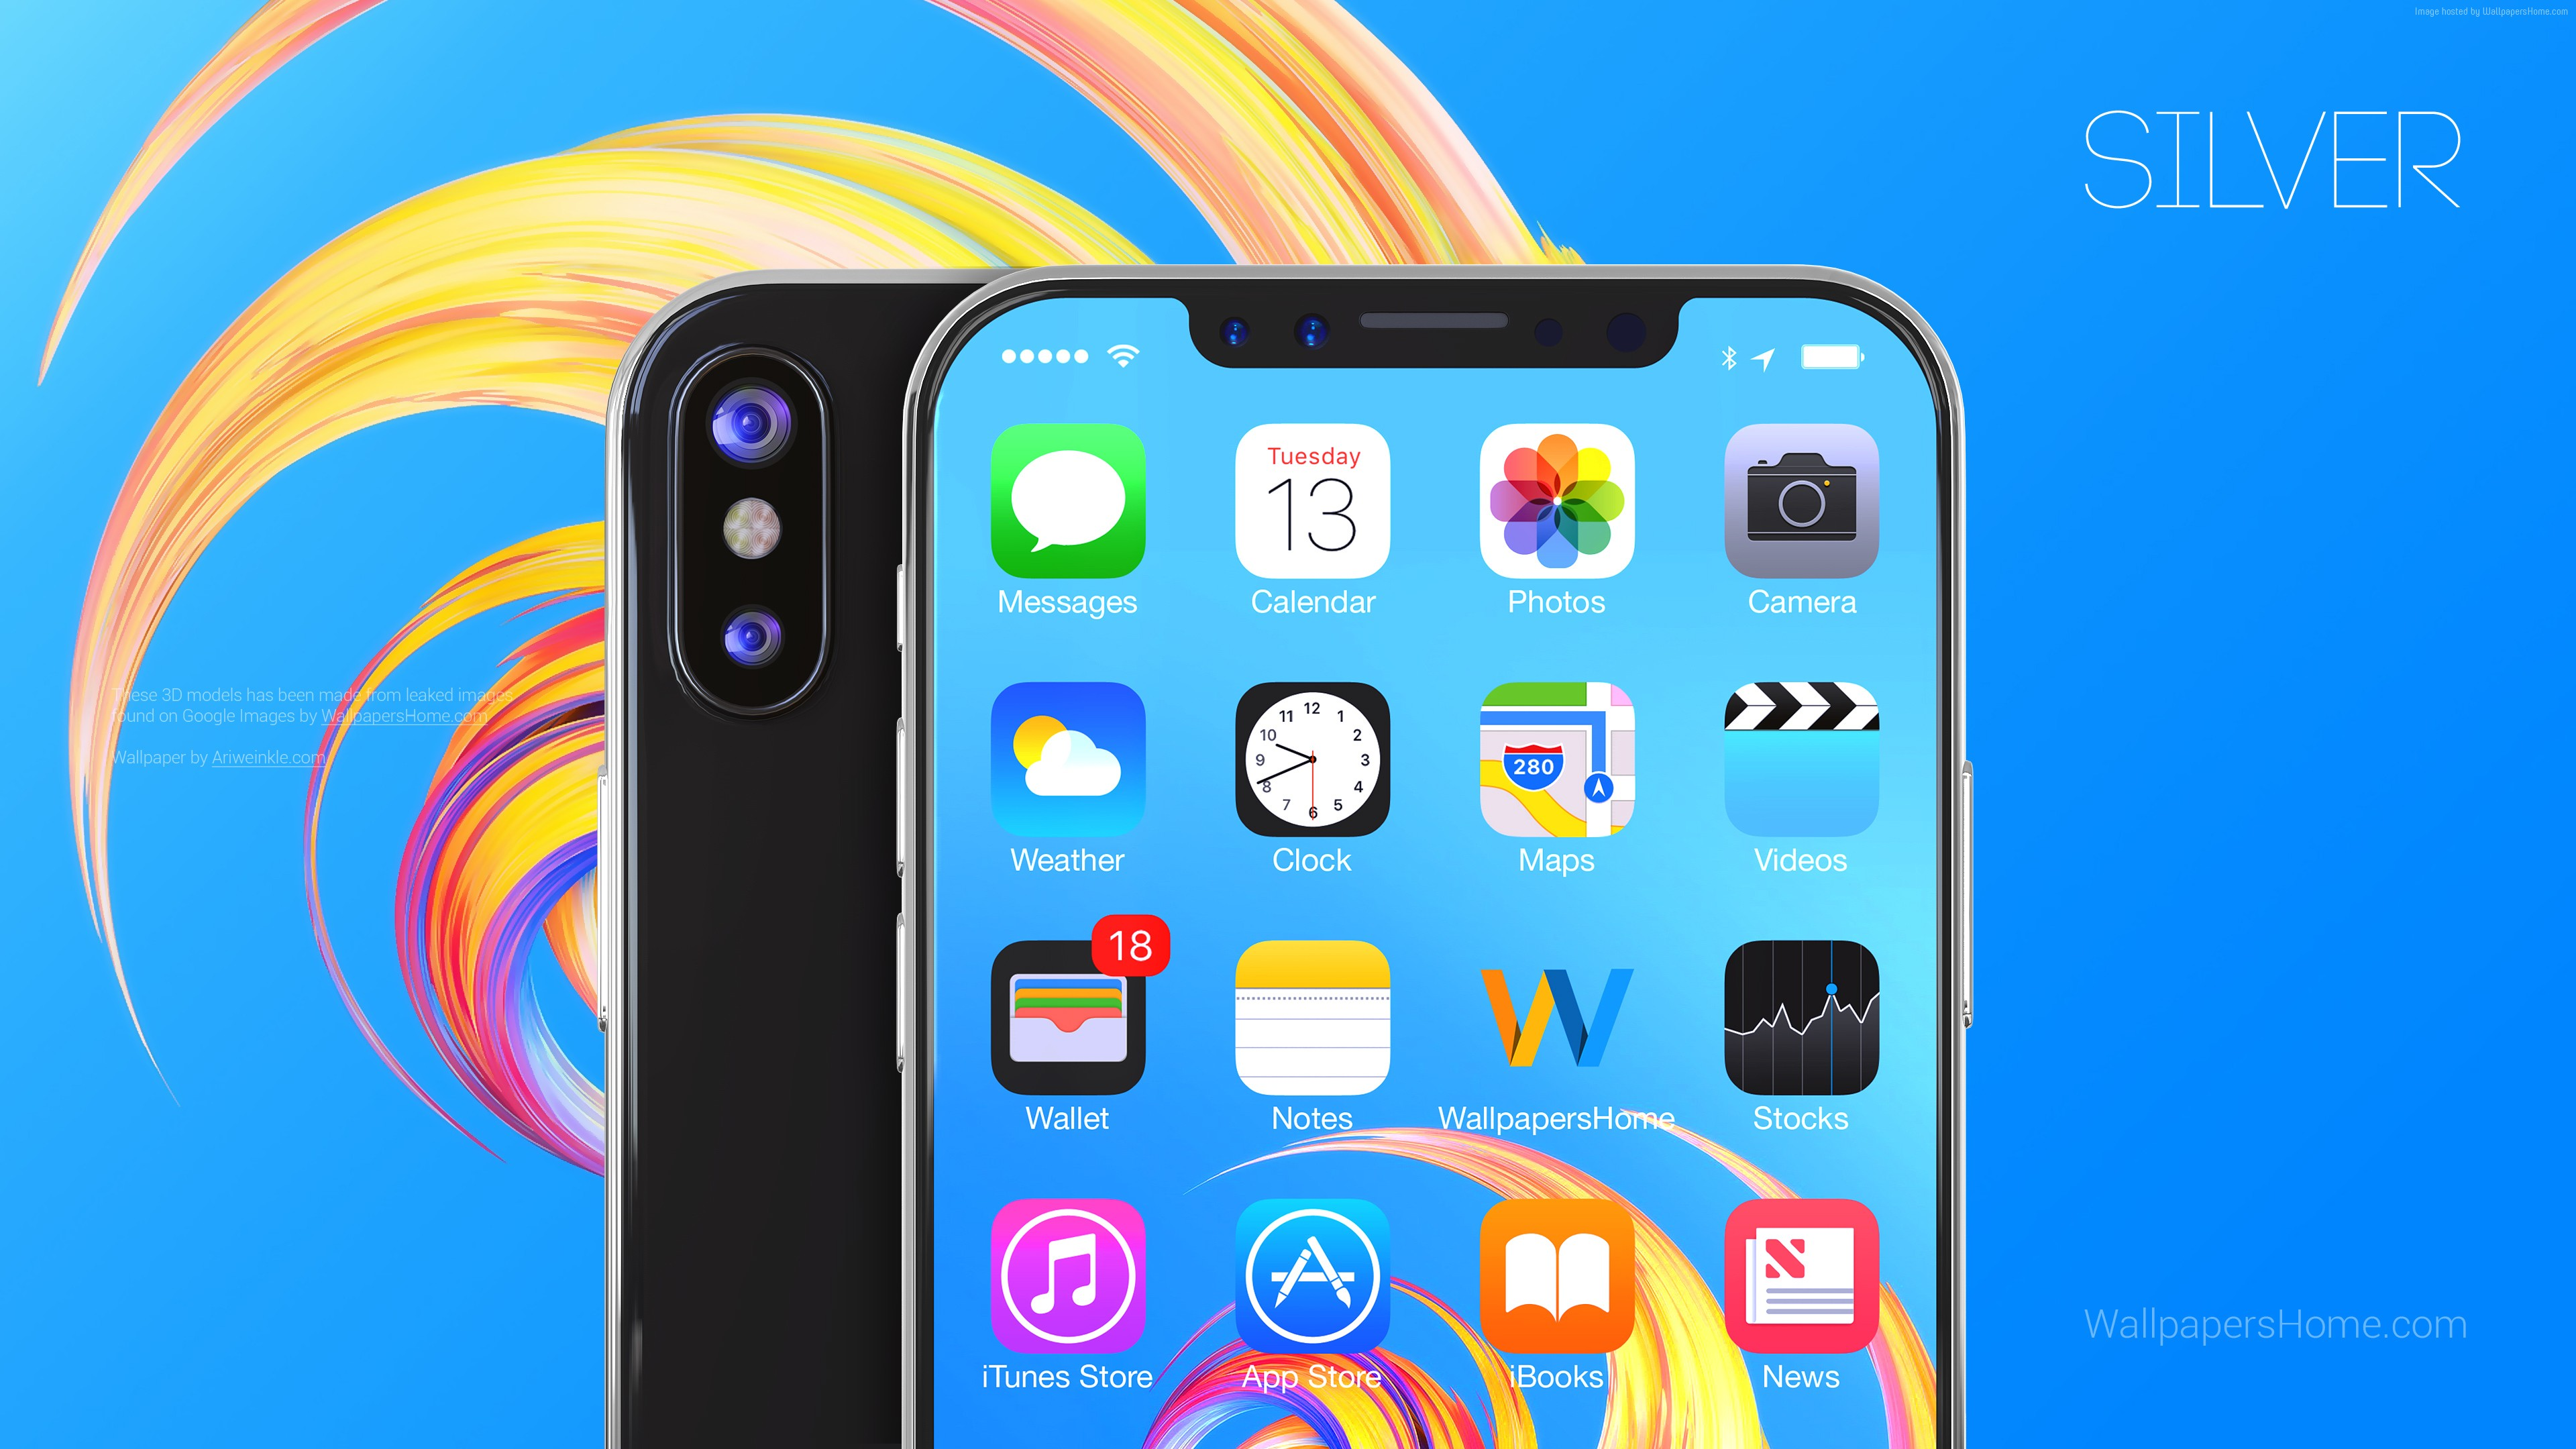 Wallpaper iPhone X, silver, 3D, leaked, WWDC 2017, 4k, Hi-Tech